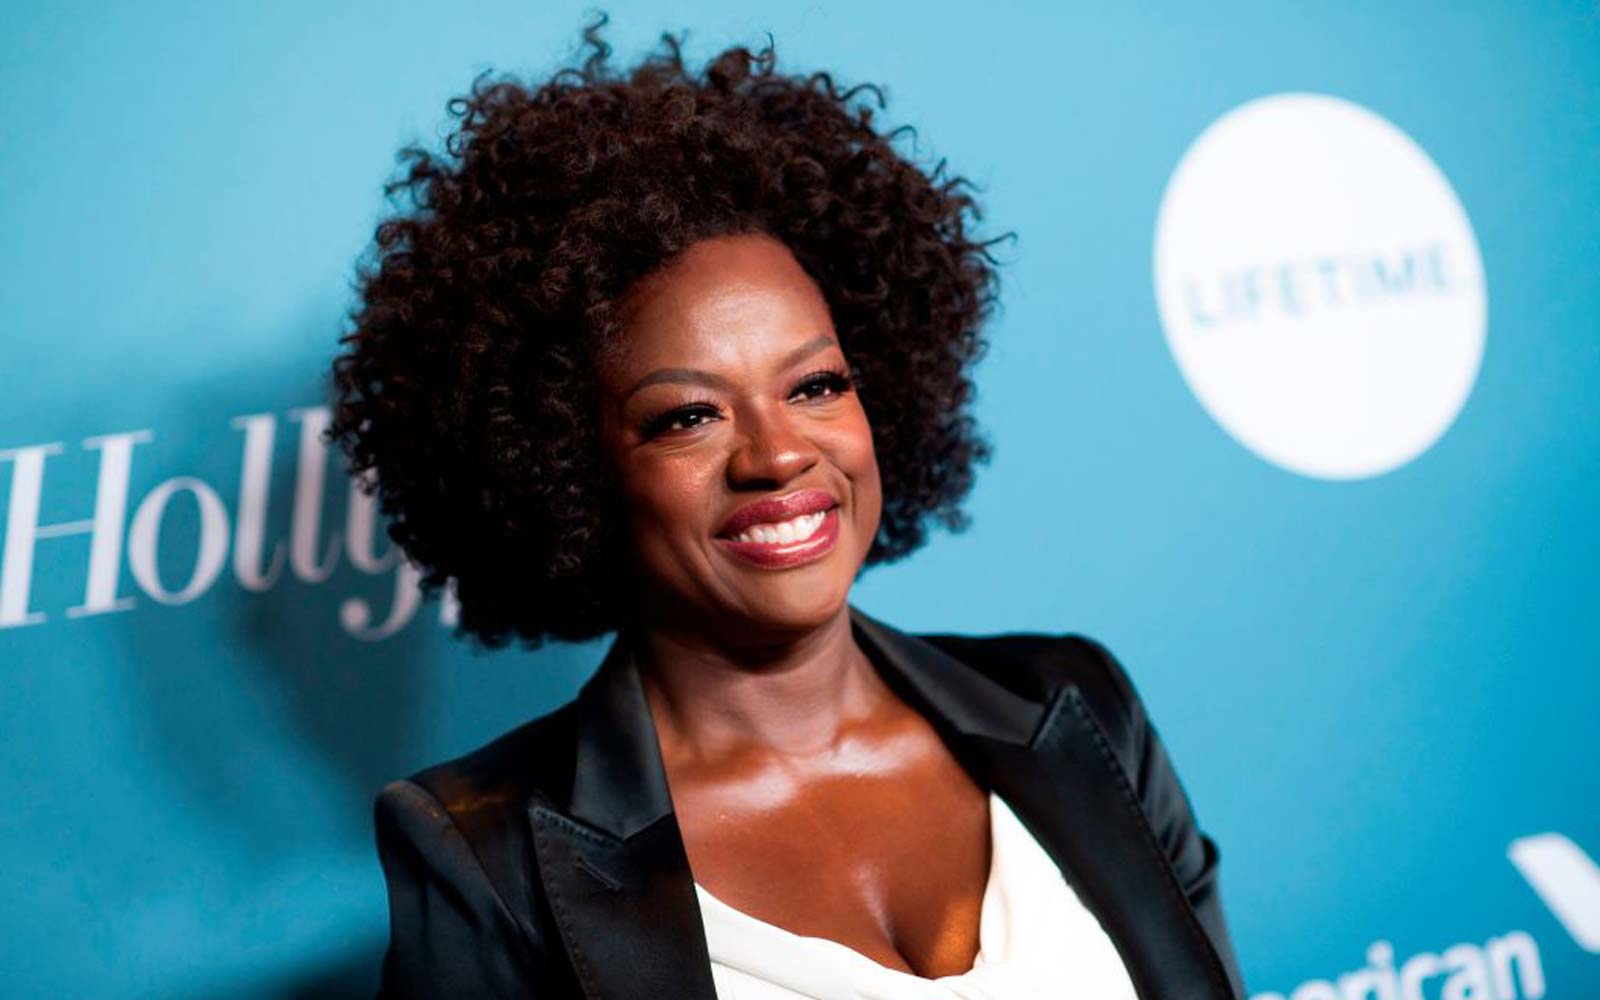 Viola Davis Went Skydiving in Hawaii in 'Exercise in Letting Go' and 'Tackling' Fears